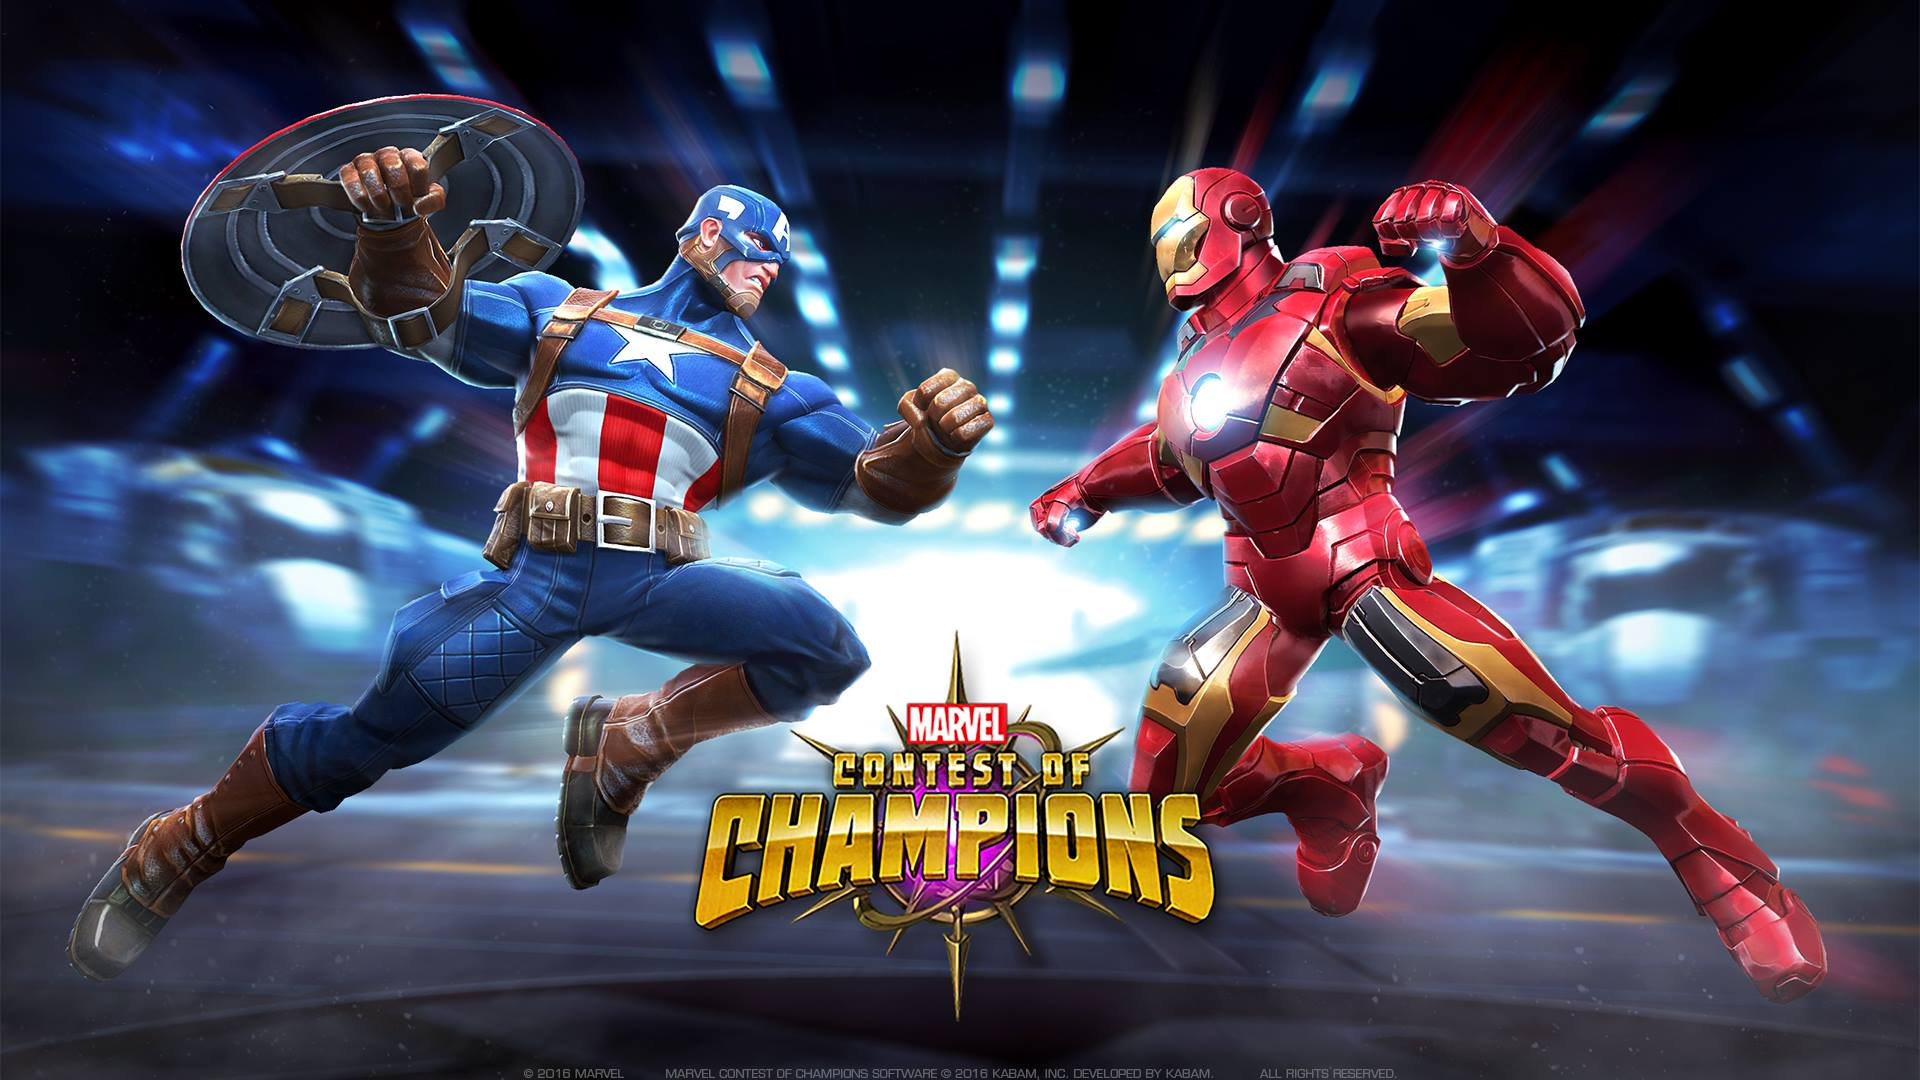 Champions Image: Captain America And Iron Man Marvel Contest Of Champions